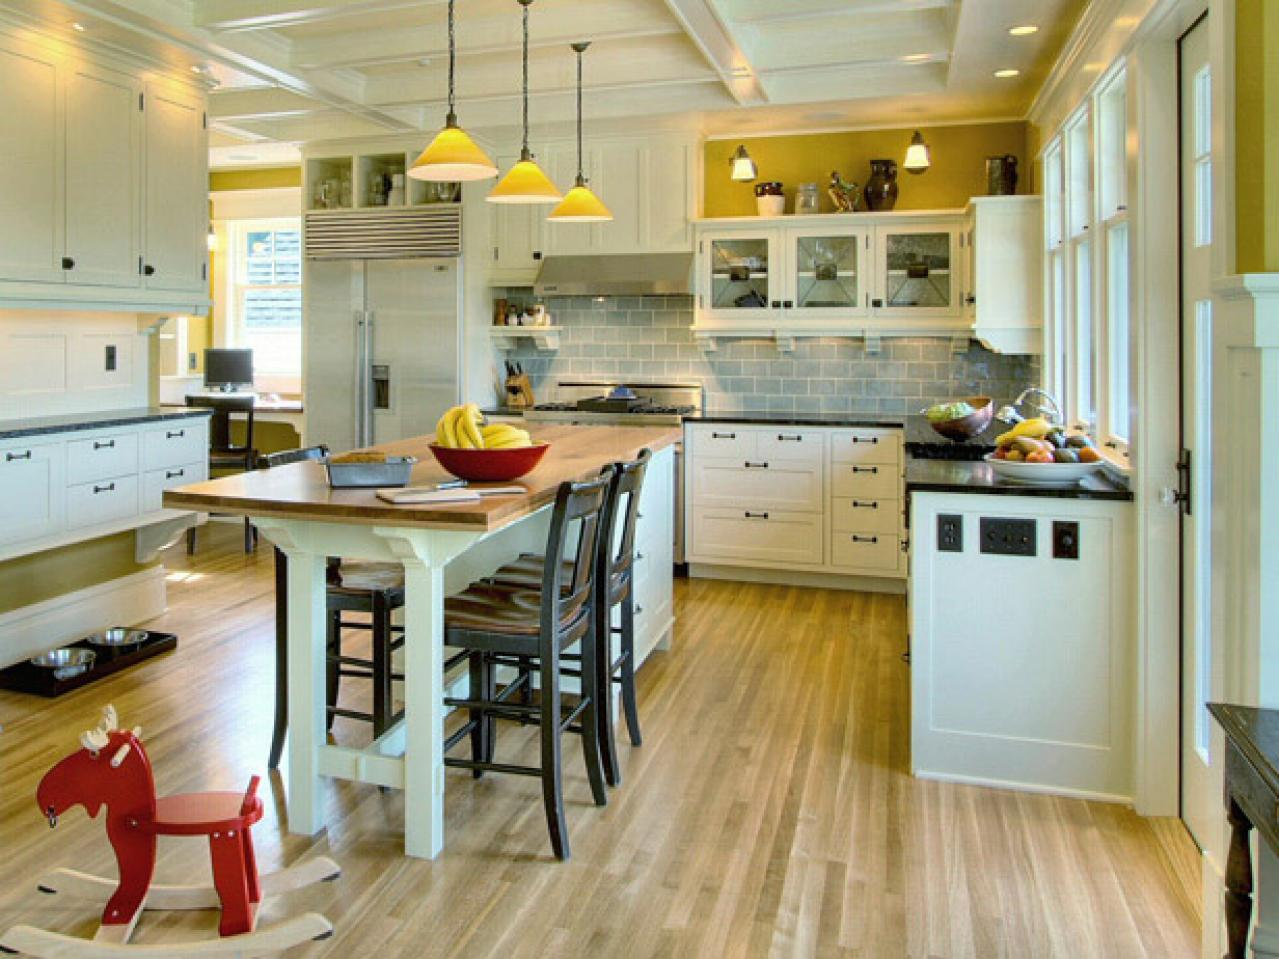 Kitchen Table Islands Cabinets Kitchen Island Table Combination: A Practical And Double